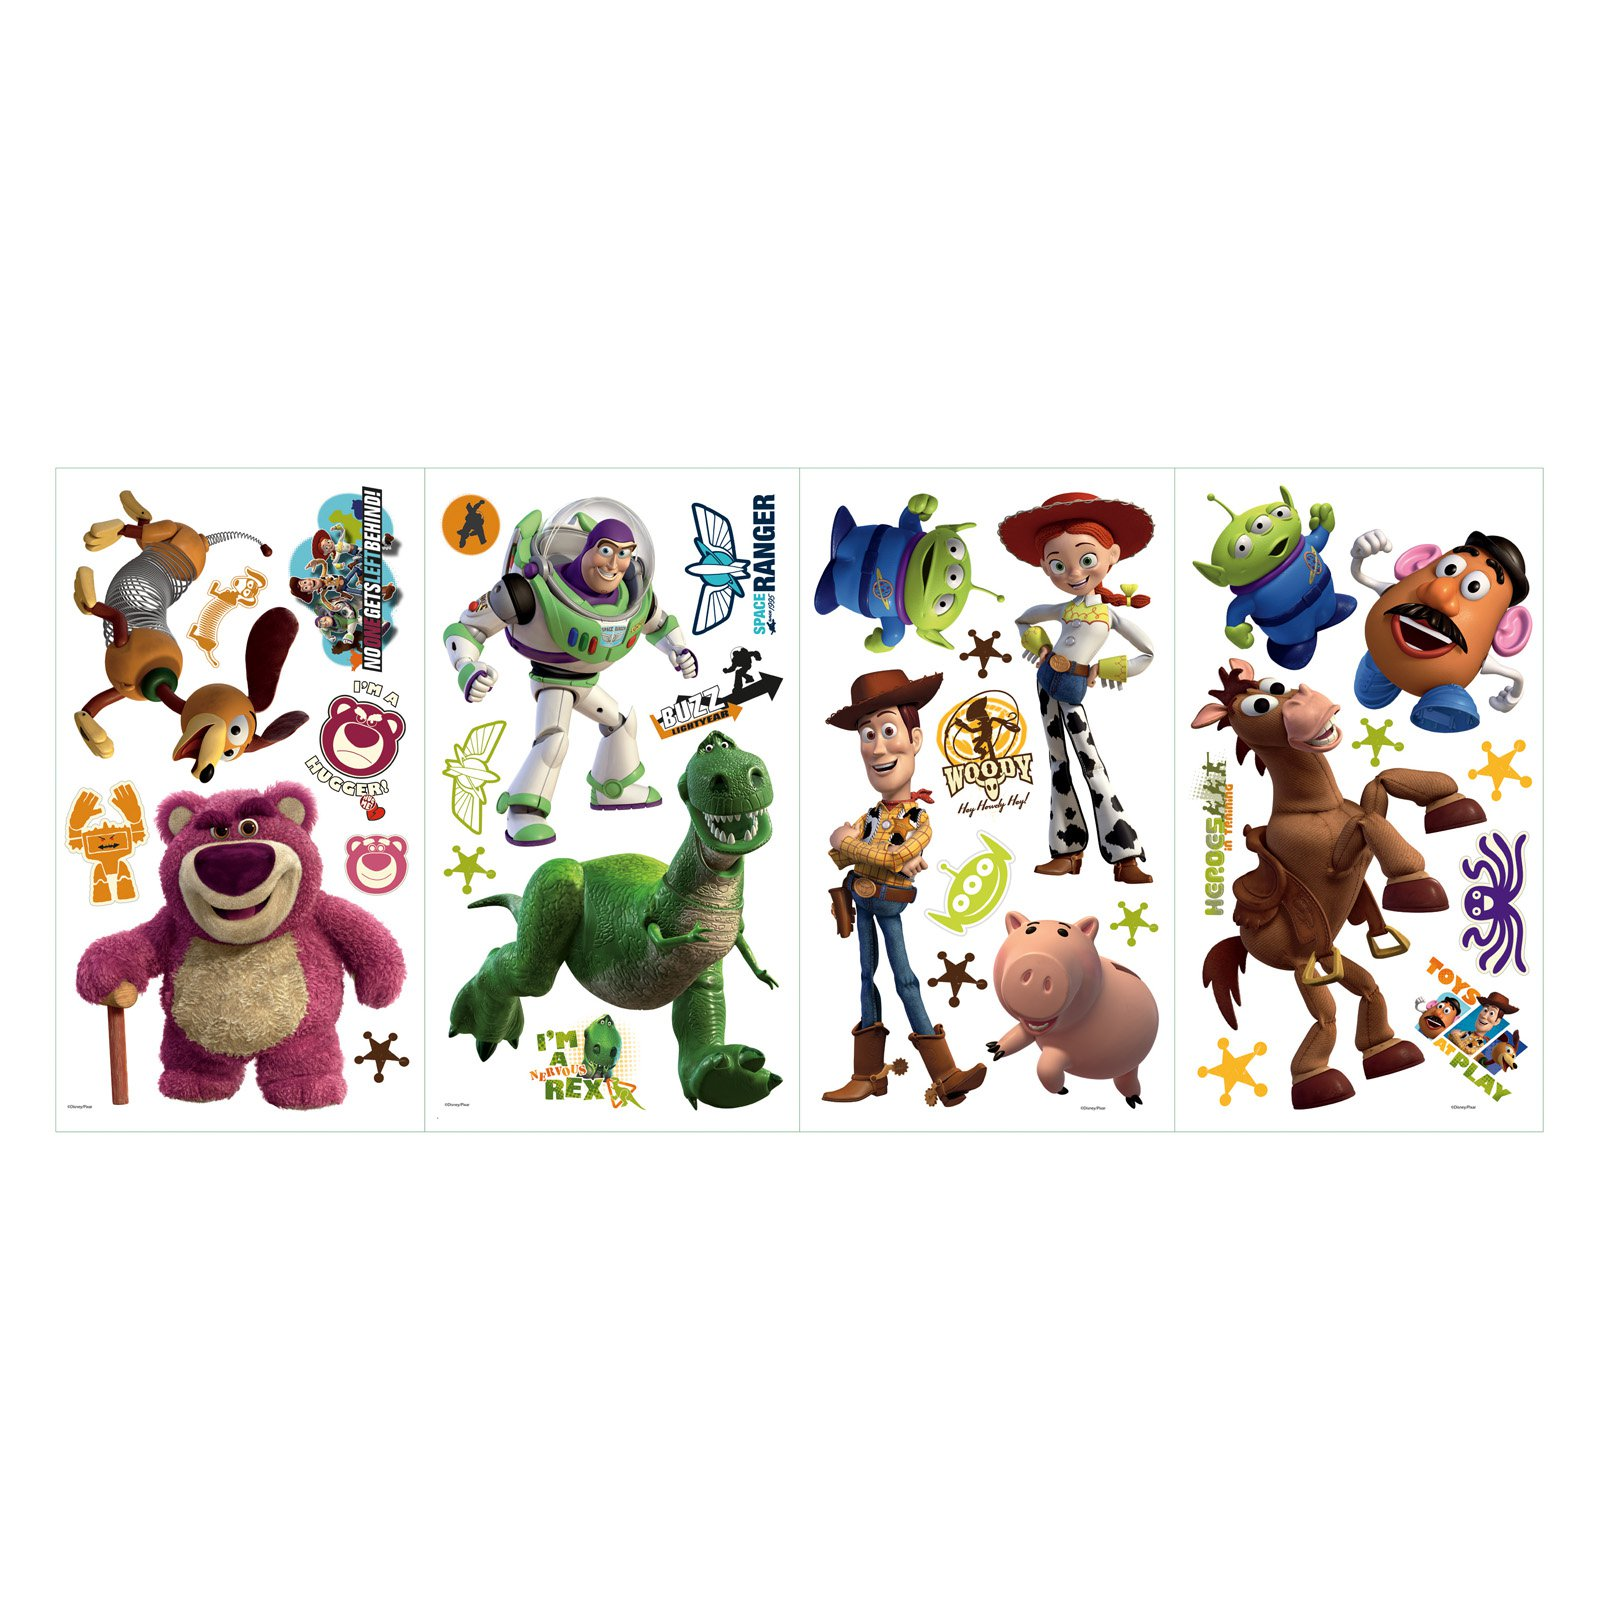 Roommates disney pixar toy story 3 peel stick wall decals glow roommates disney pixar toy story 3 peel stick wall decals glow in the dark walmart amipublicfo Image collections